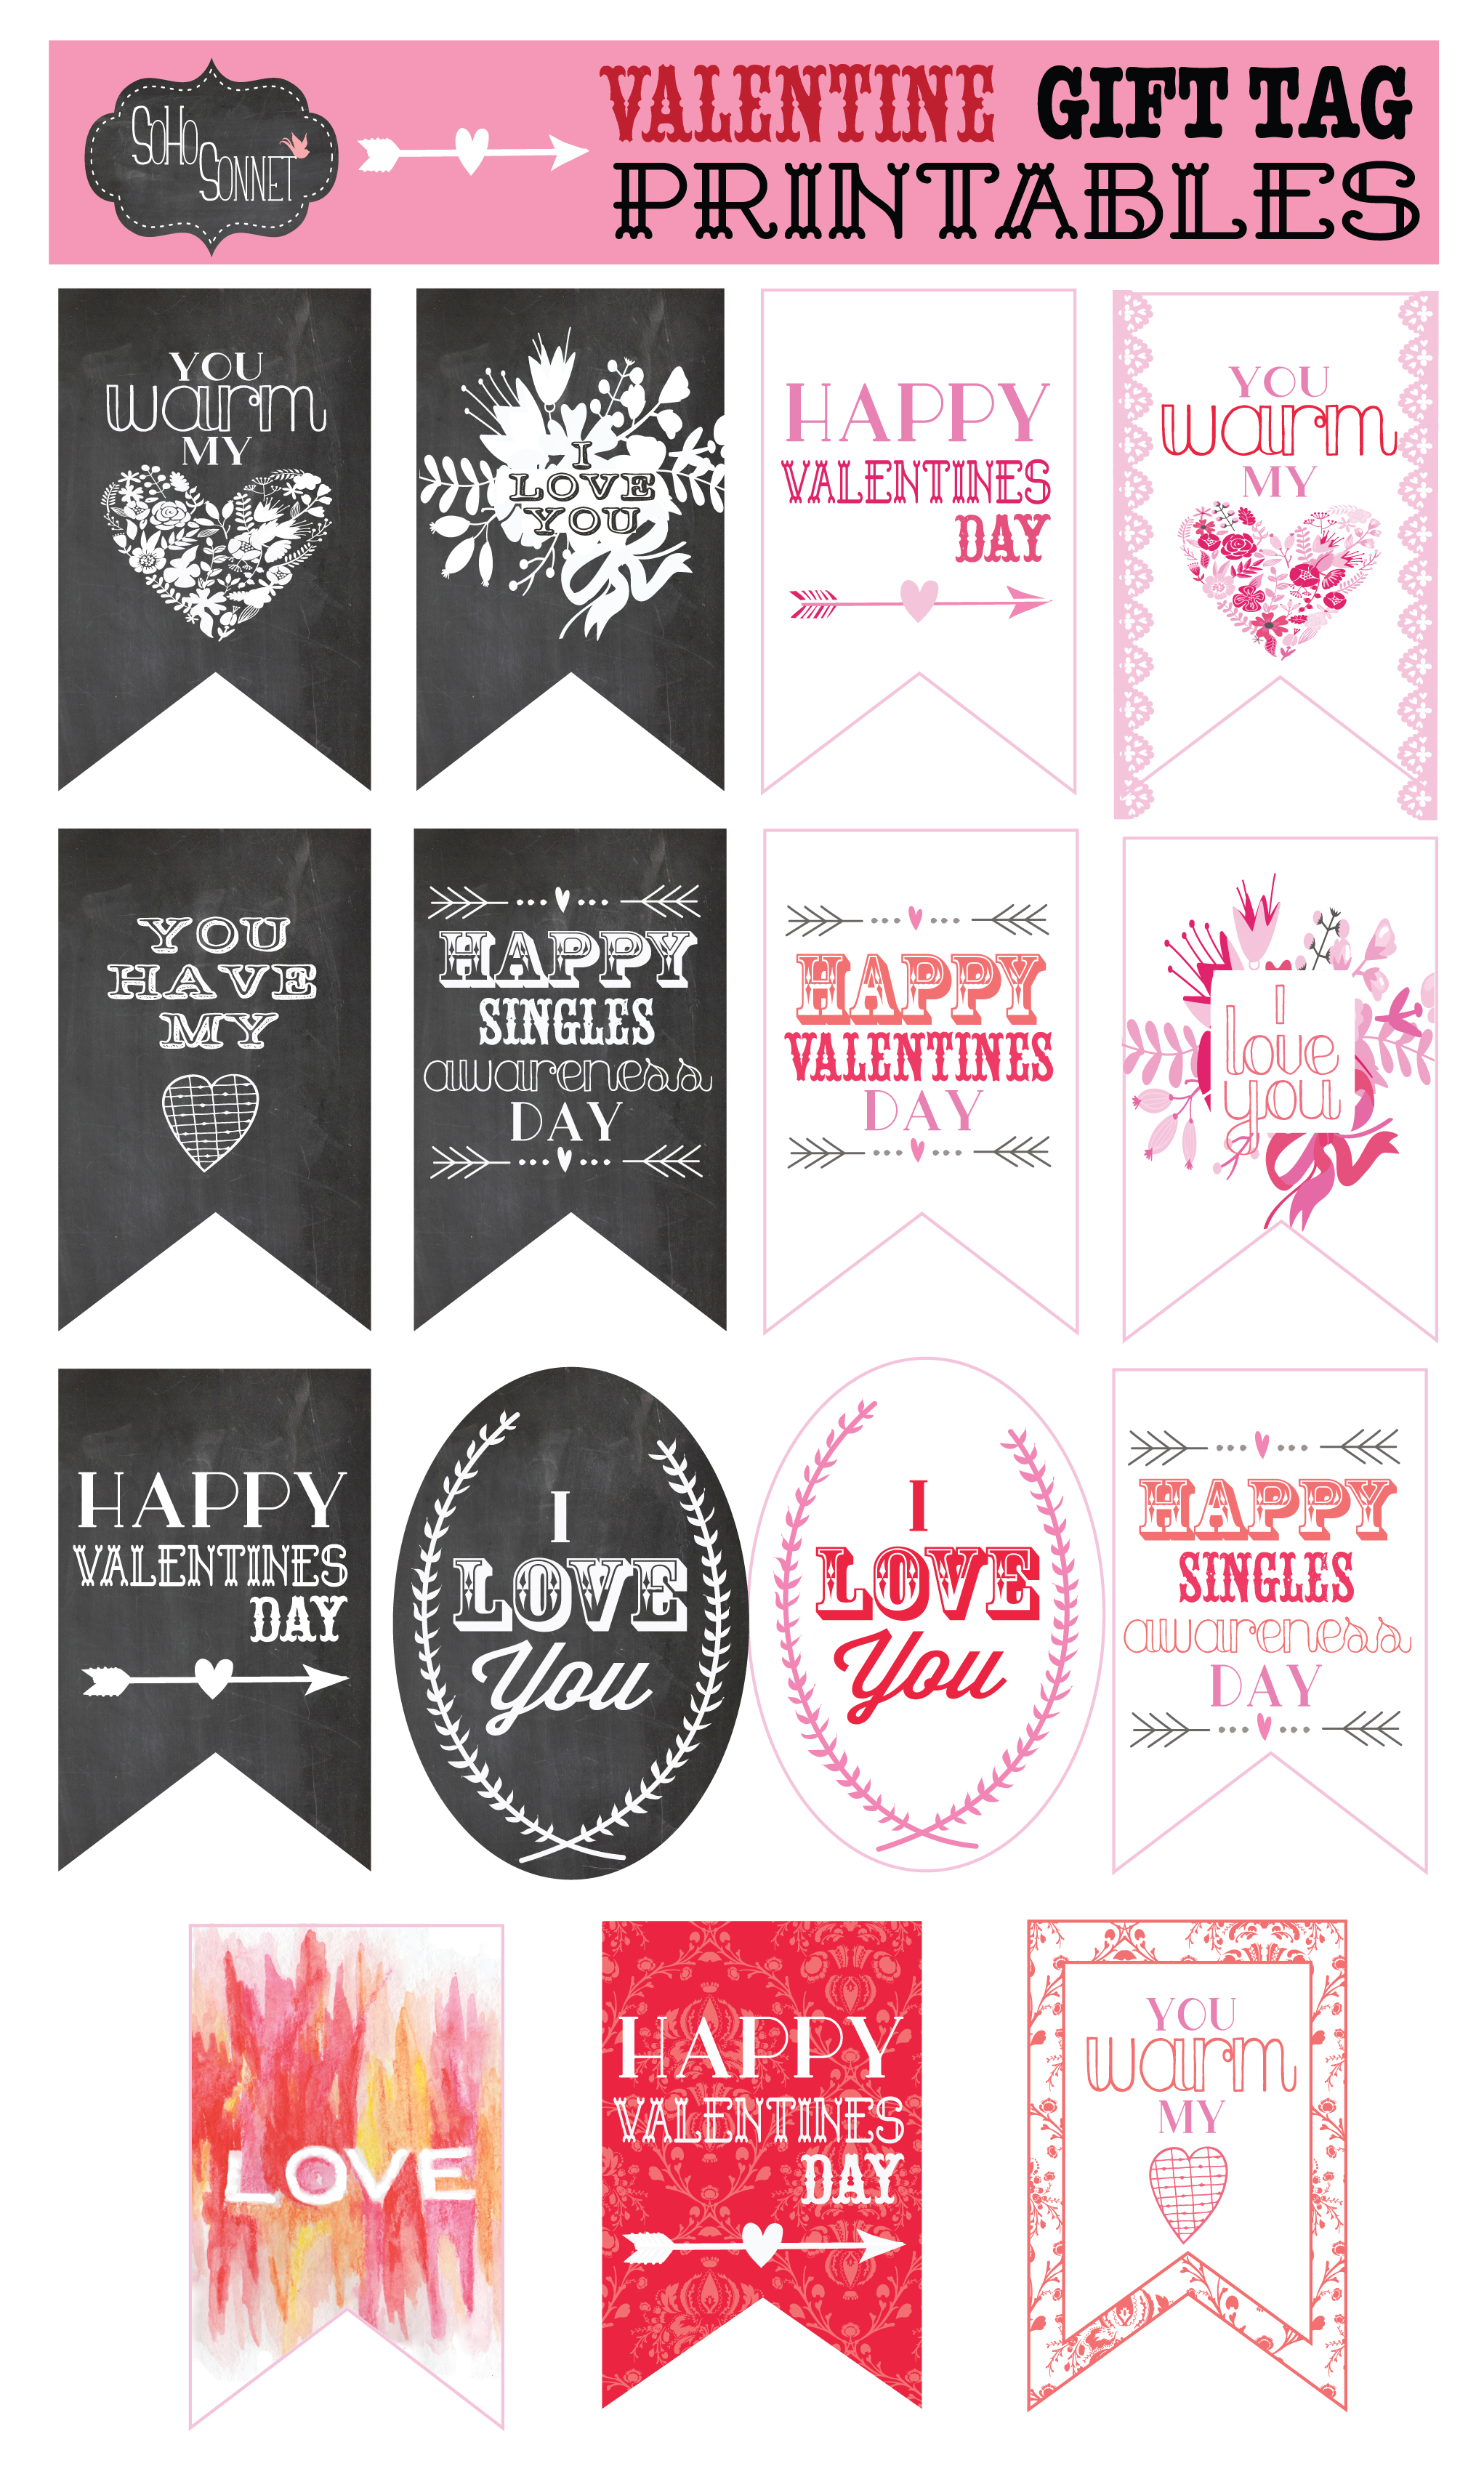 photo regarding Gift Tag Printable Free named No cost Valentine Reward Tag Printables - SohoSonnet Innovative Dwelling